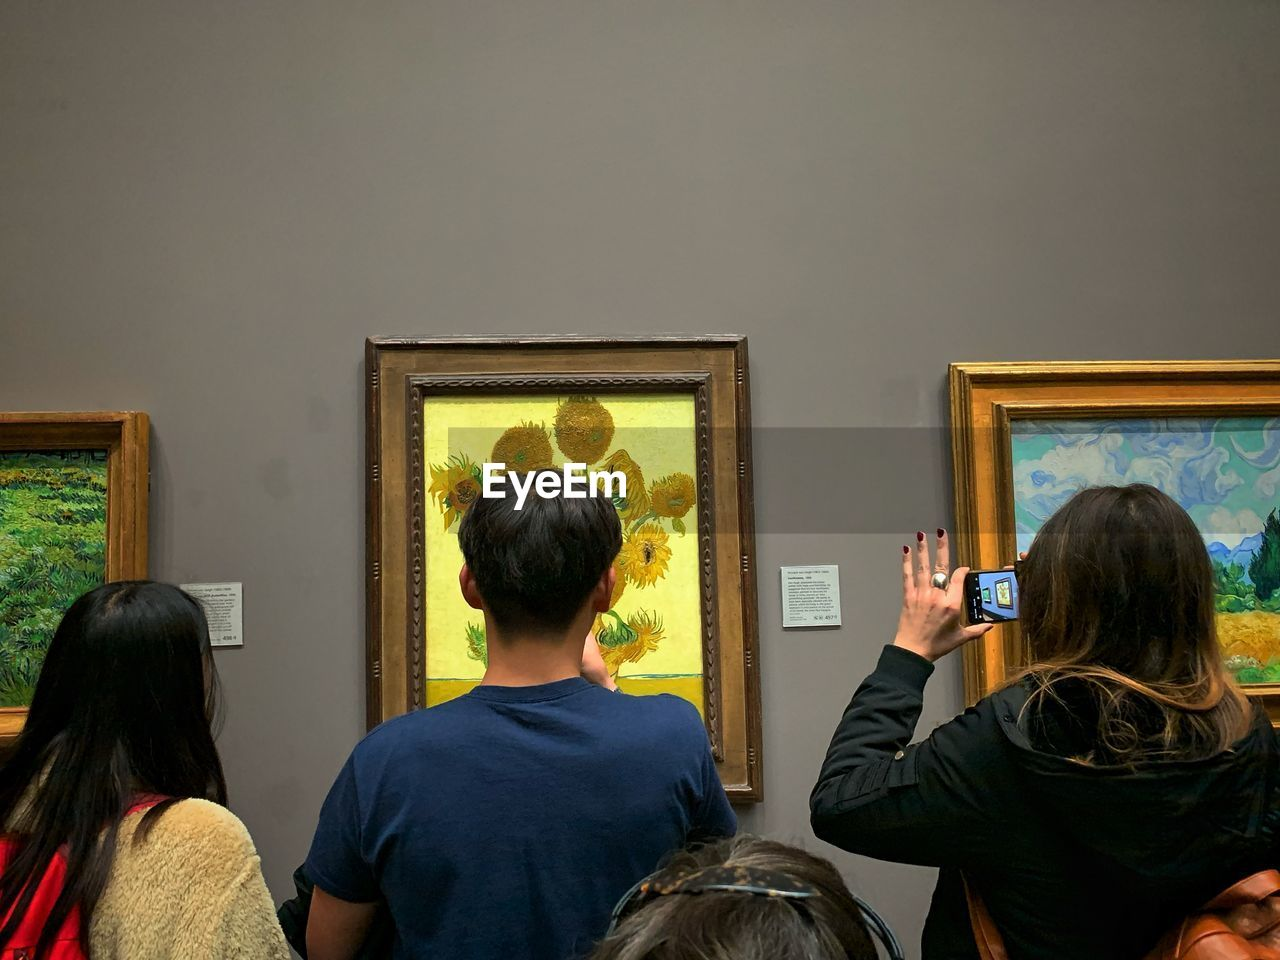 rear view, indoors, adult, men, real people, women, people, frame, headshot, lifestyles, picture frame, casual clothing, mirror, wall - building feature, art museum, group of people, technology, waist up, looking, portrait, hairstyle